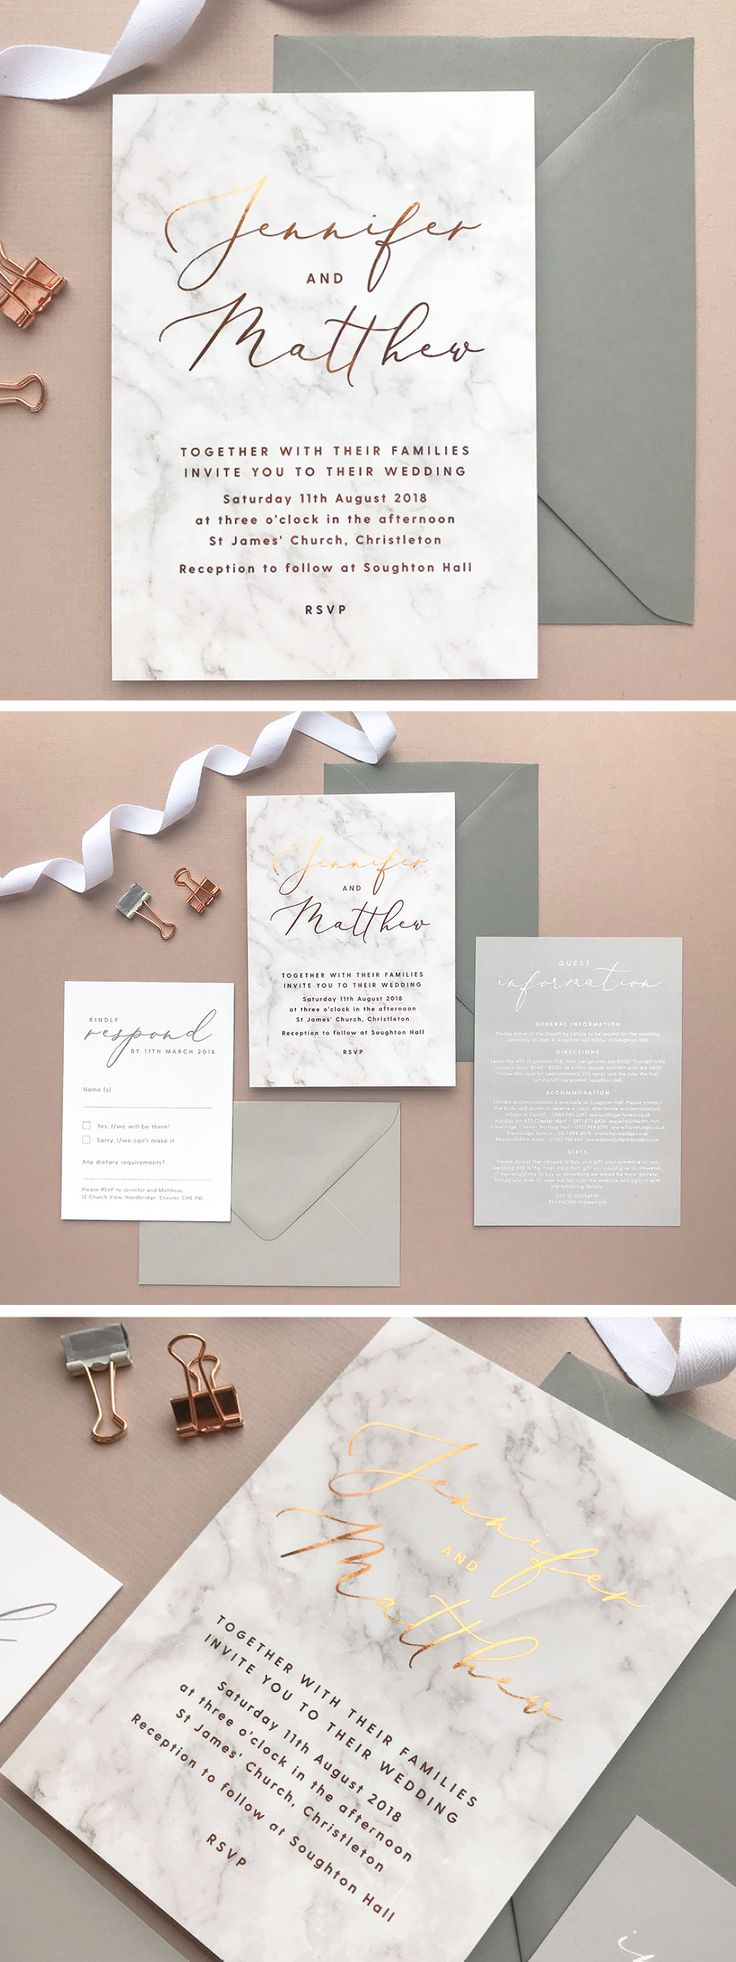 1331 Best I N V I T A T I O N S Images On Pinterest Invitations